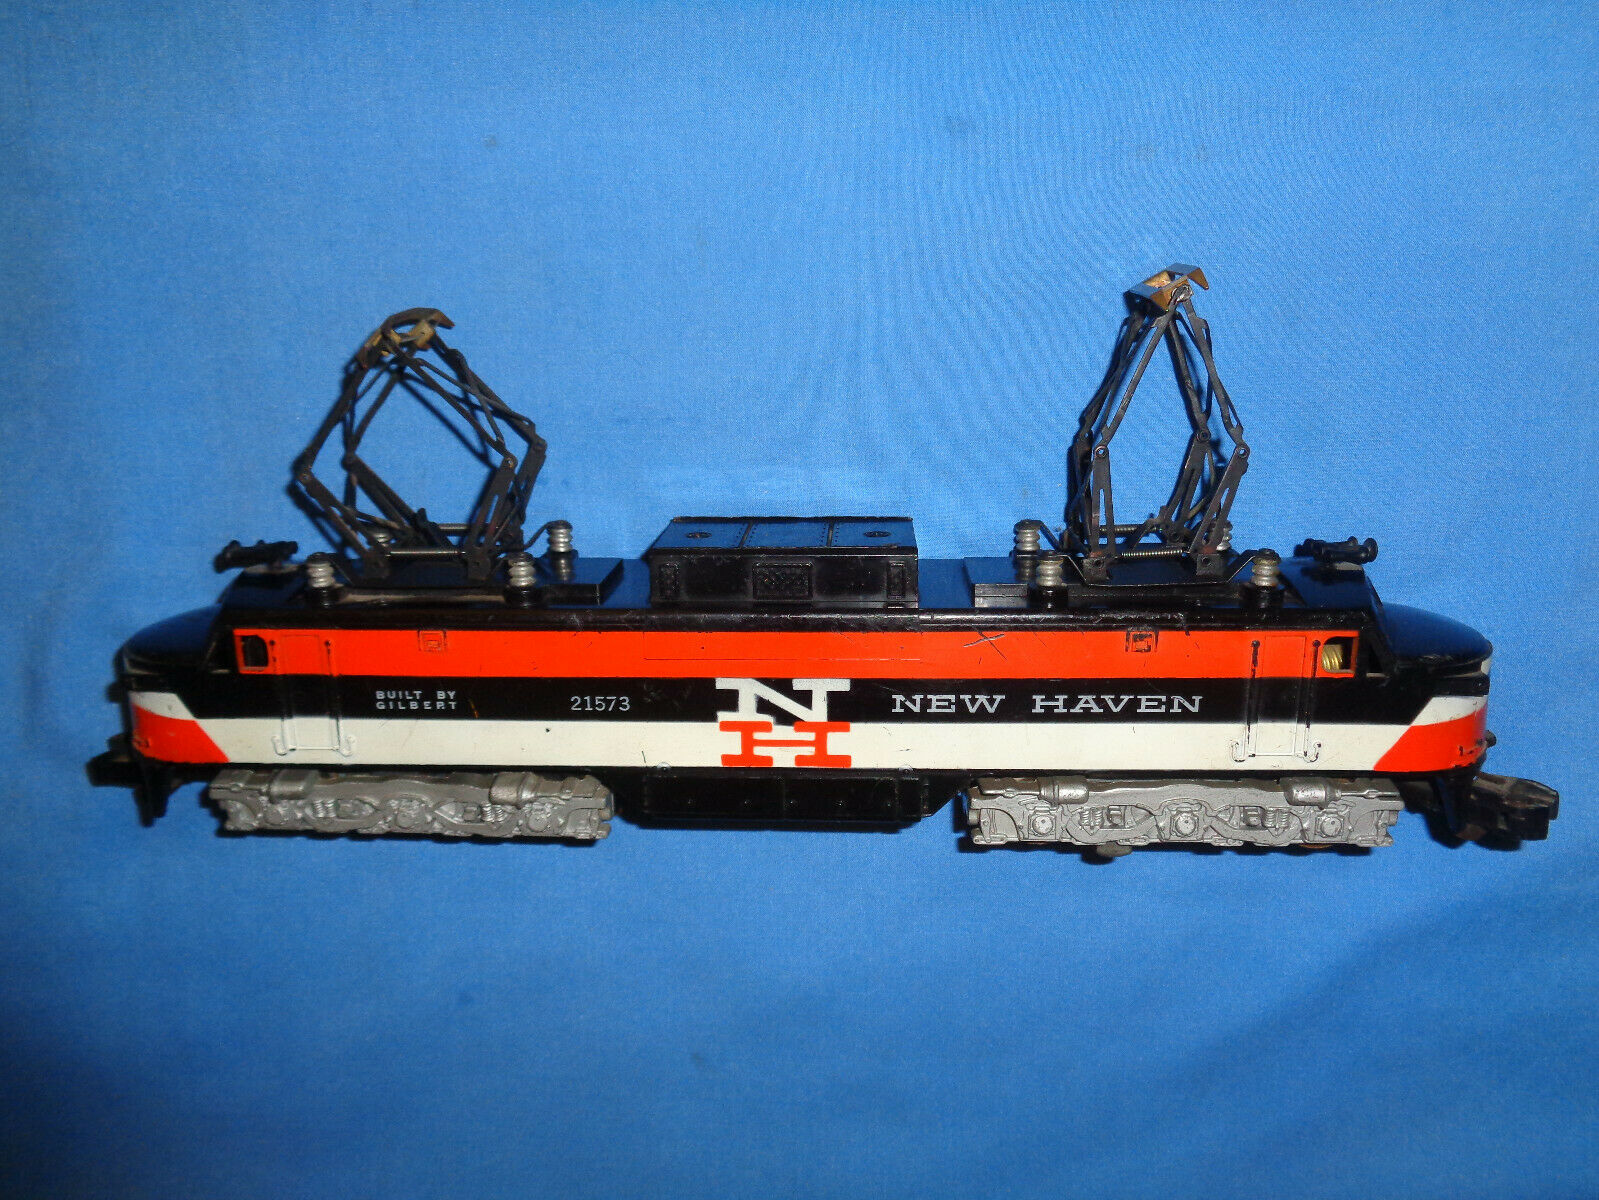 American Flyer  21573 nuovo Haven EP-5 Diesel Electric Locomotive. correres Well